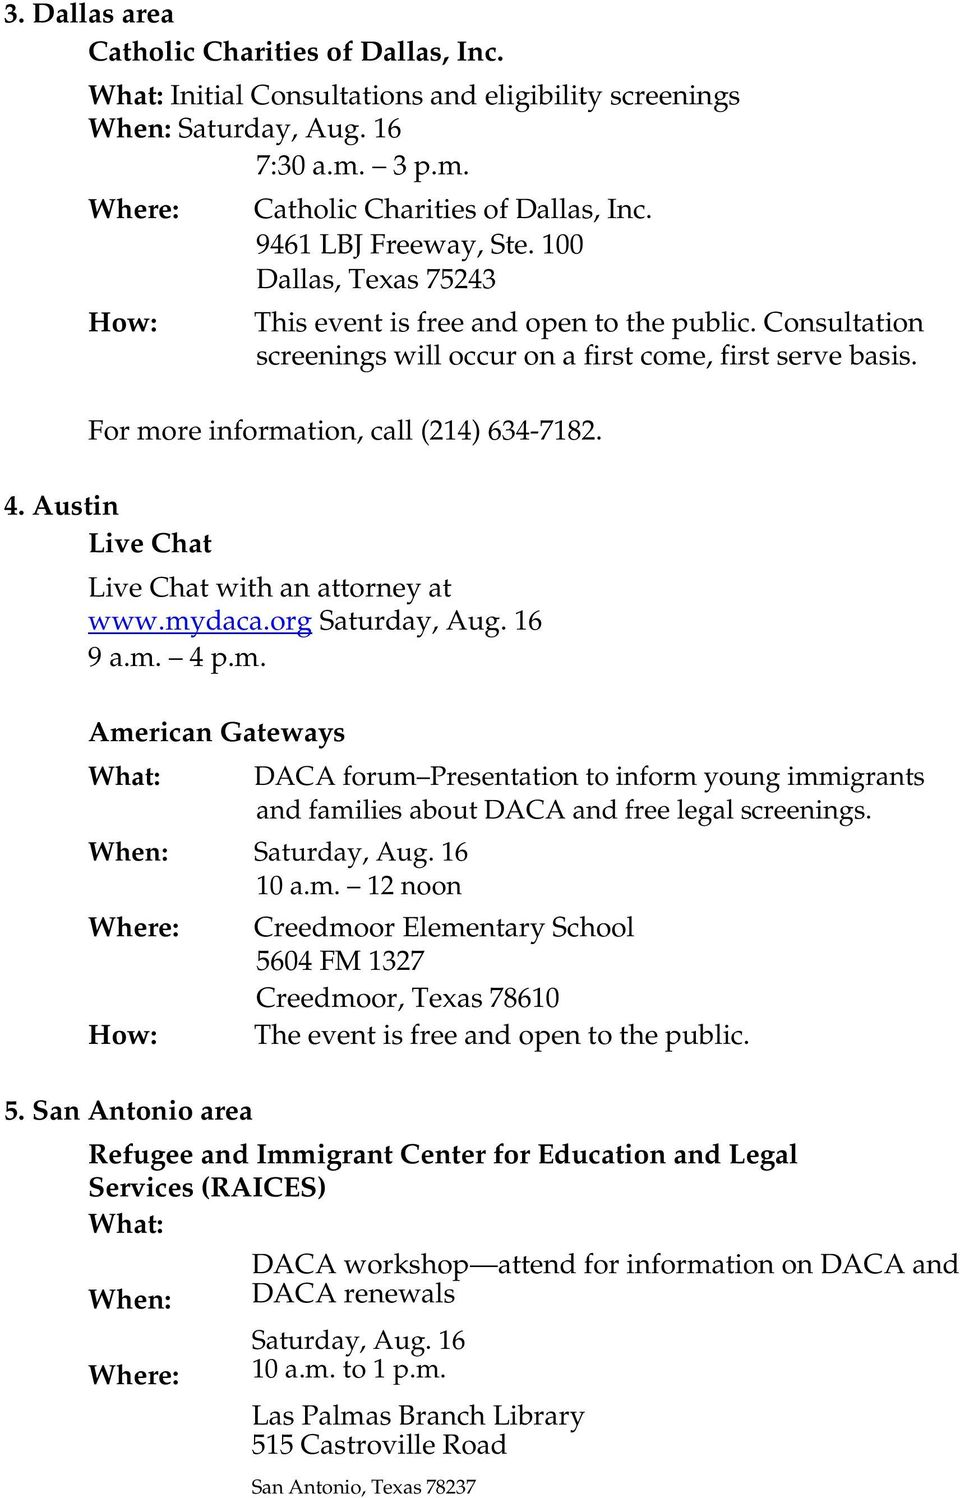 Austin Live Chat Live Chat with an attorney at www.mydaca.org 9 a.m. 4 p.m. American Gateways DACA forum Presentation to inform young immigrants and families about DACA and free legal screenings.